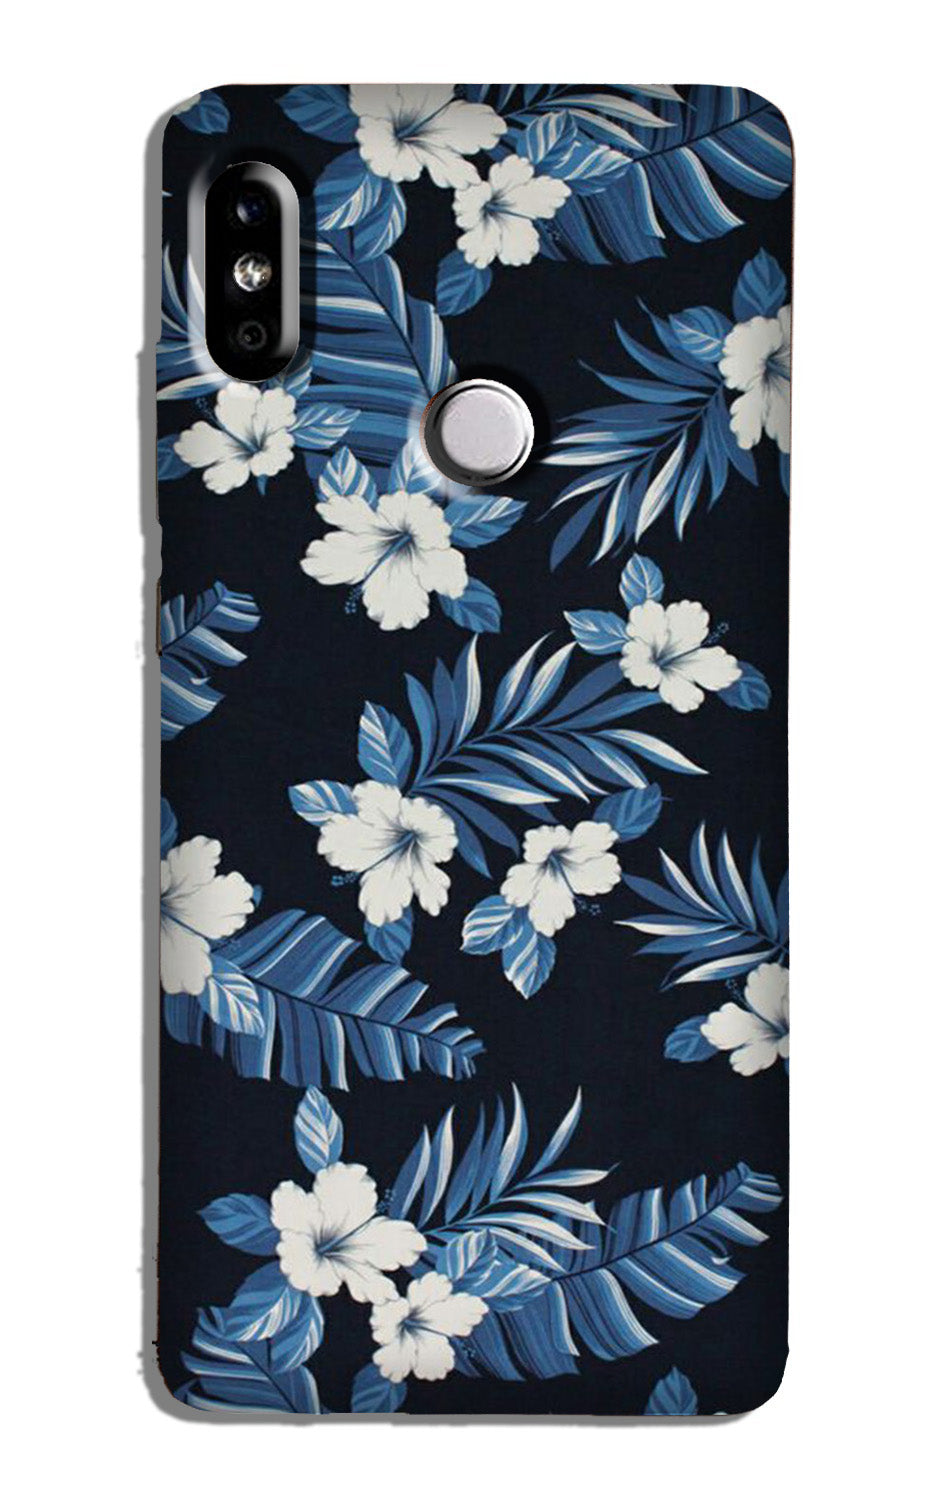 White flowers Blue Background2 Case for Redmi 6 Pro